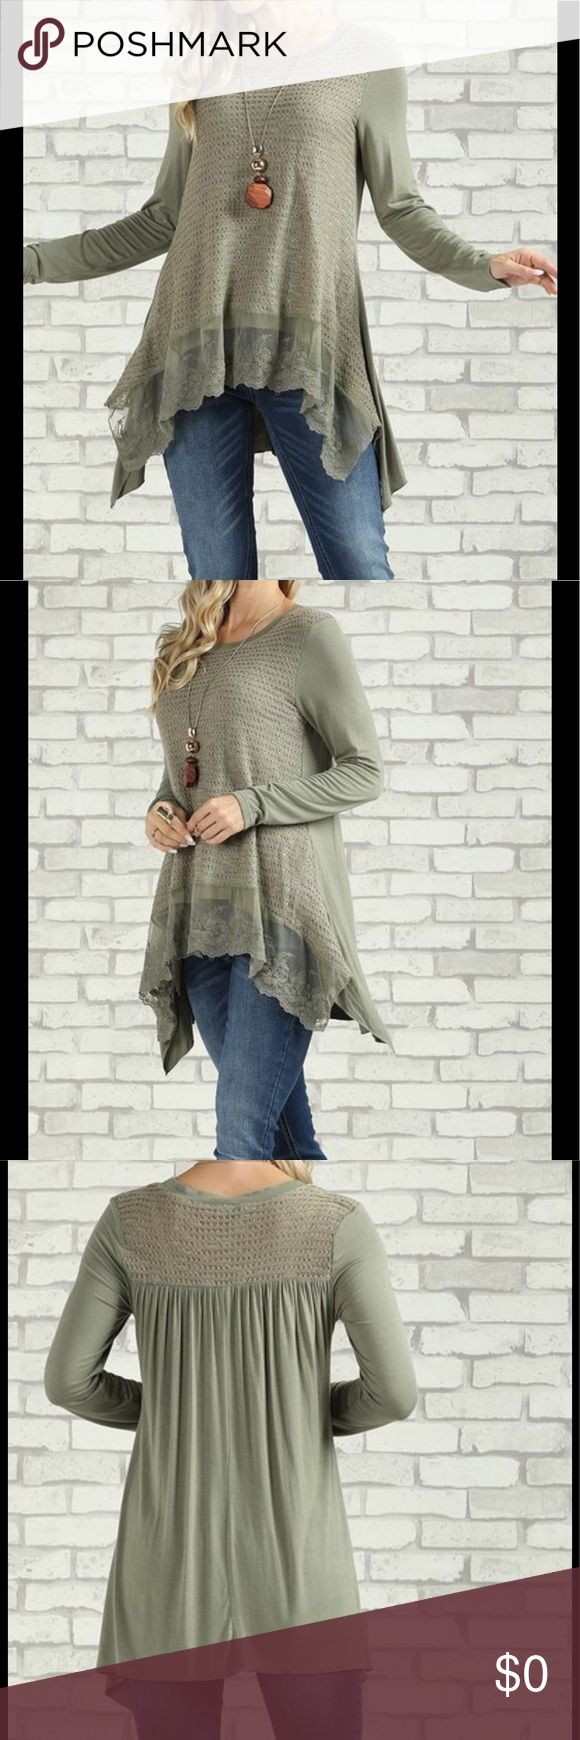 🆕 Lace Accent Side Tail Tunic Long Sleeve A Beautiful Sage Green Tunic.  A playful hem and eye-catching paneling elevate this top from simple to chic. Size S: 28'' long from high point of shoulder to hem Model (wearing size S): 5' 8'' tall; 34'' chest; 25.25'' waist; 36.75'' hips Knit. Shell: 100% acrylic Contrast: 95% rayon / 5% spandex Imported. 1028201726807042 Tops Tunics